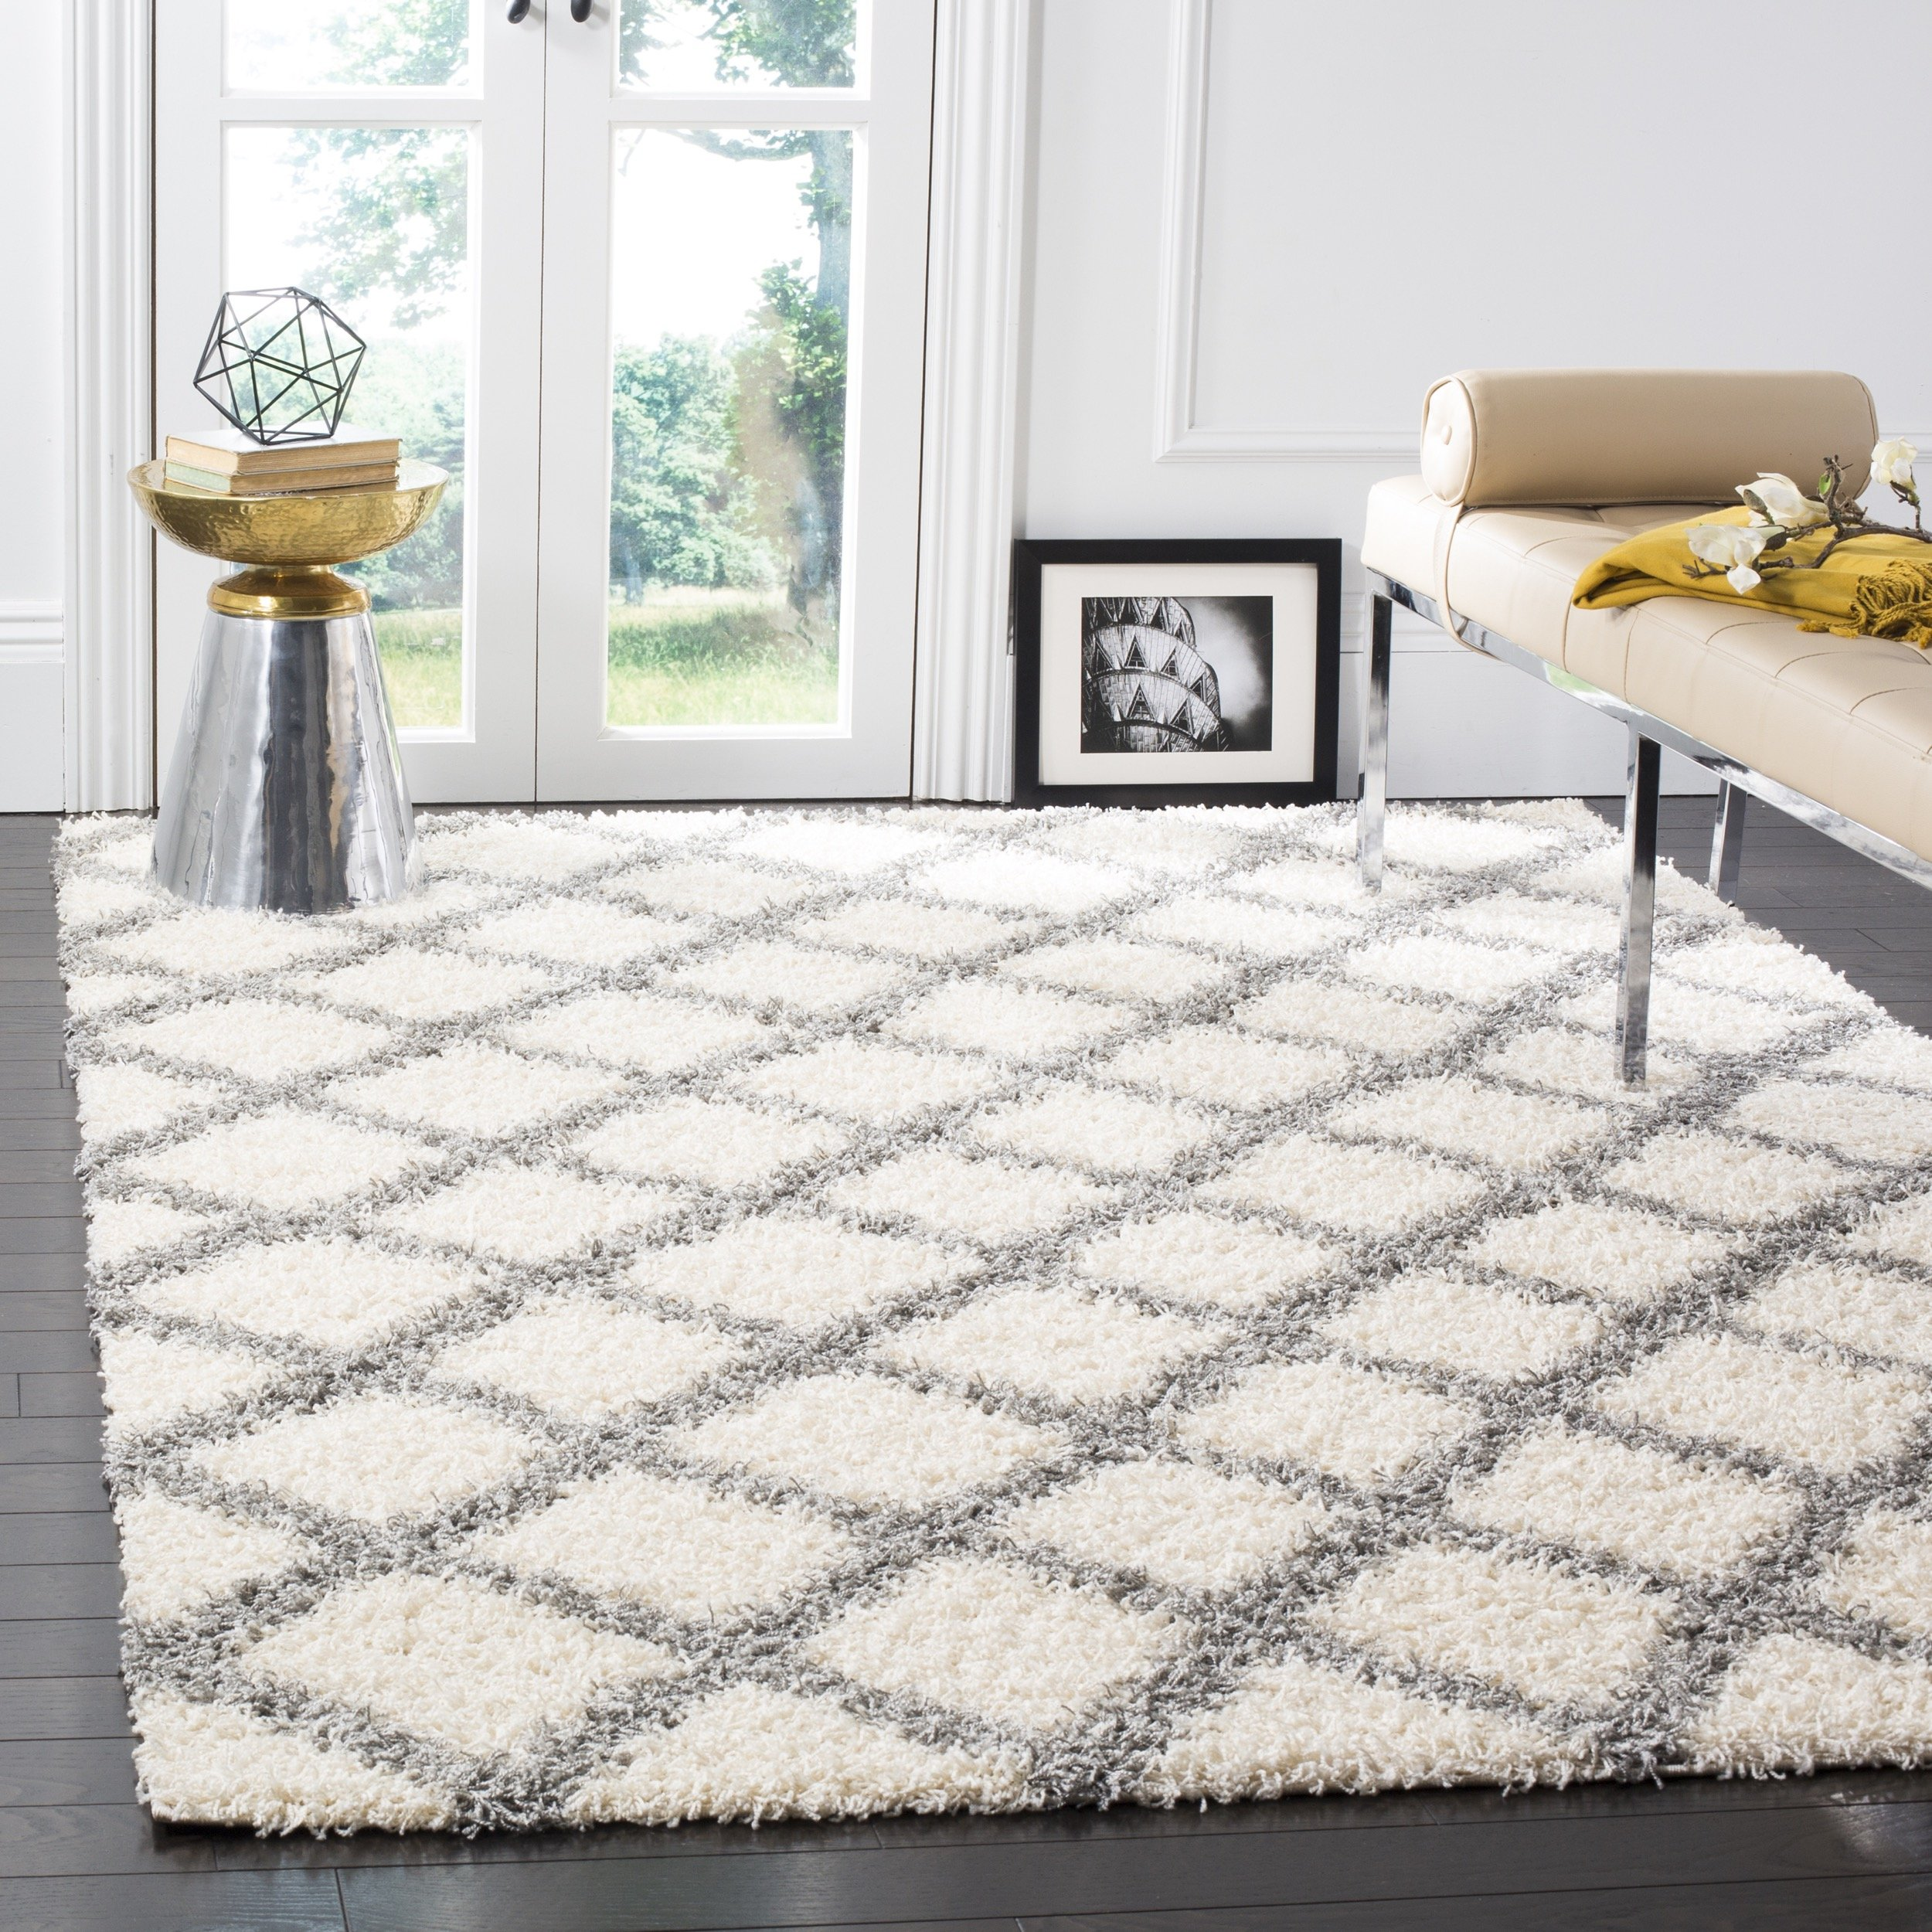 Safavieh Dallas Shag Collection SGD258F Ivory and Grey Area Rug (5'1'' x 7'6'') by Safavieh